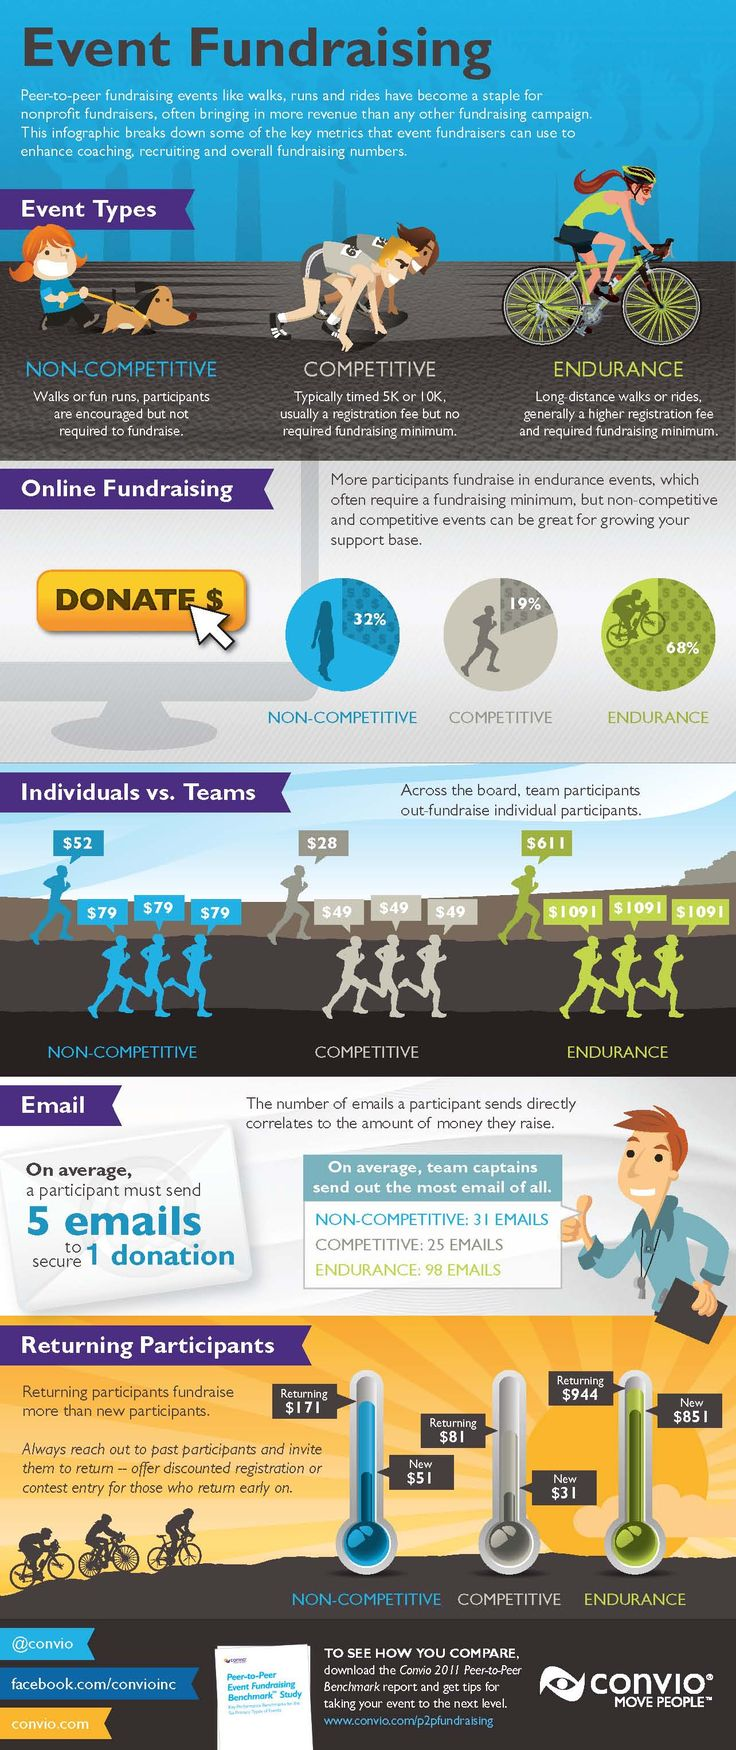 fundraising infographic Peer to Peer Fundraising Events Raise